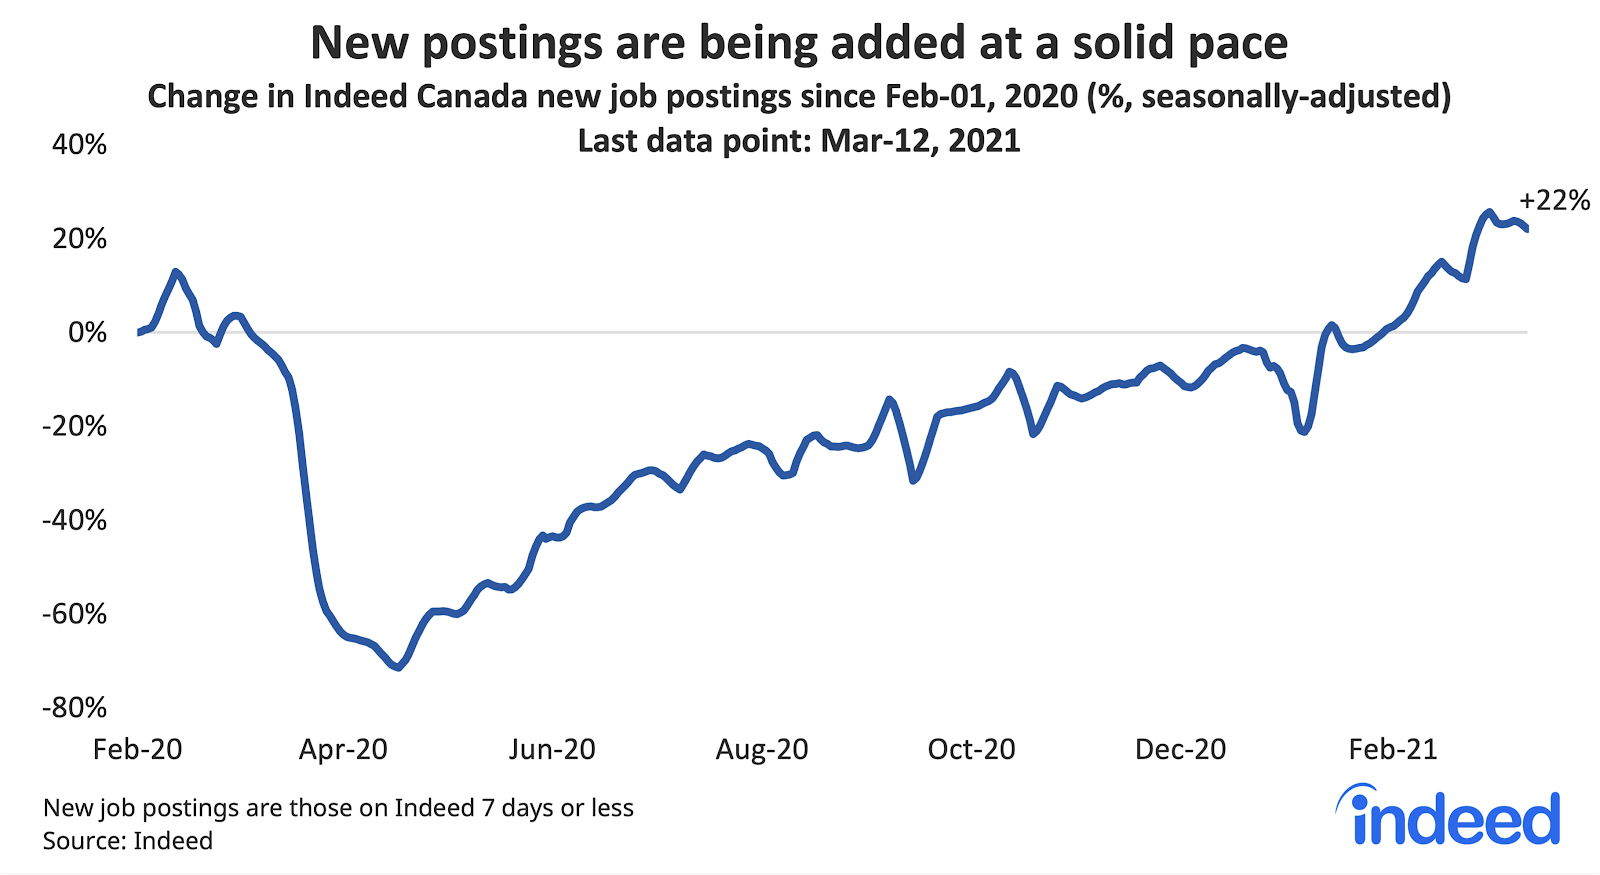 Line graph showing new job postings are being added at a solid pace in Canada